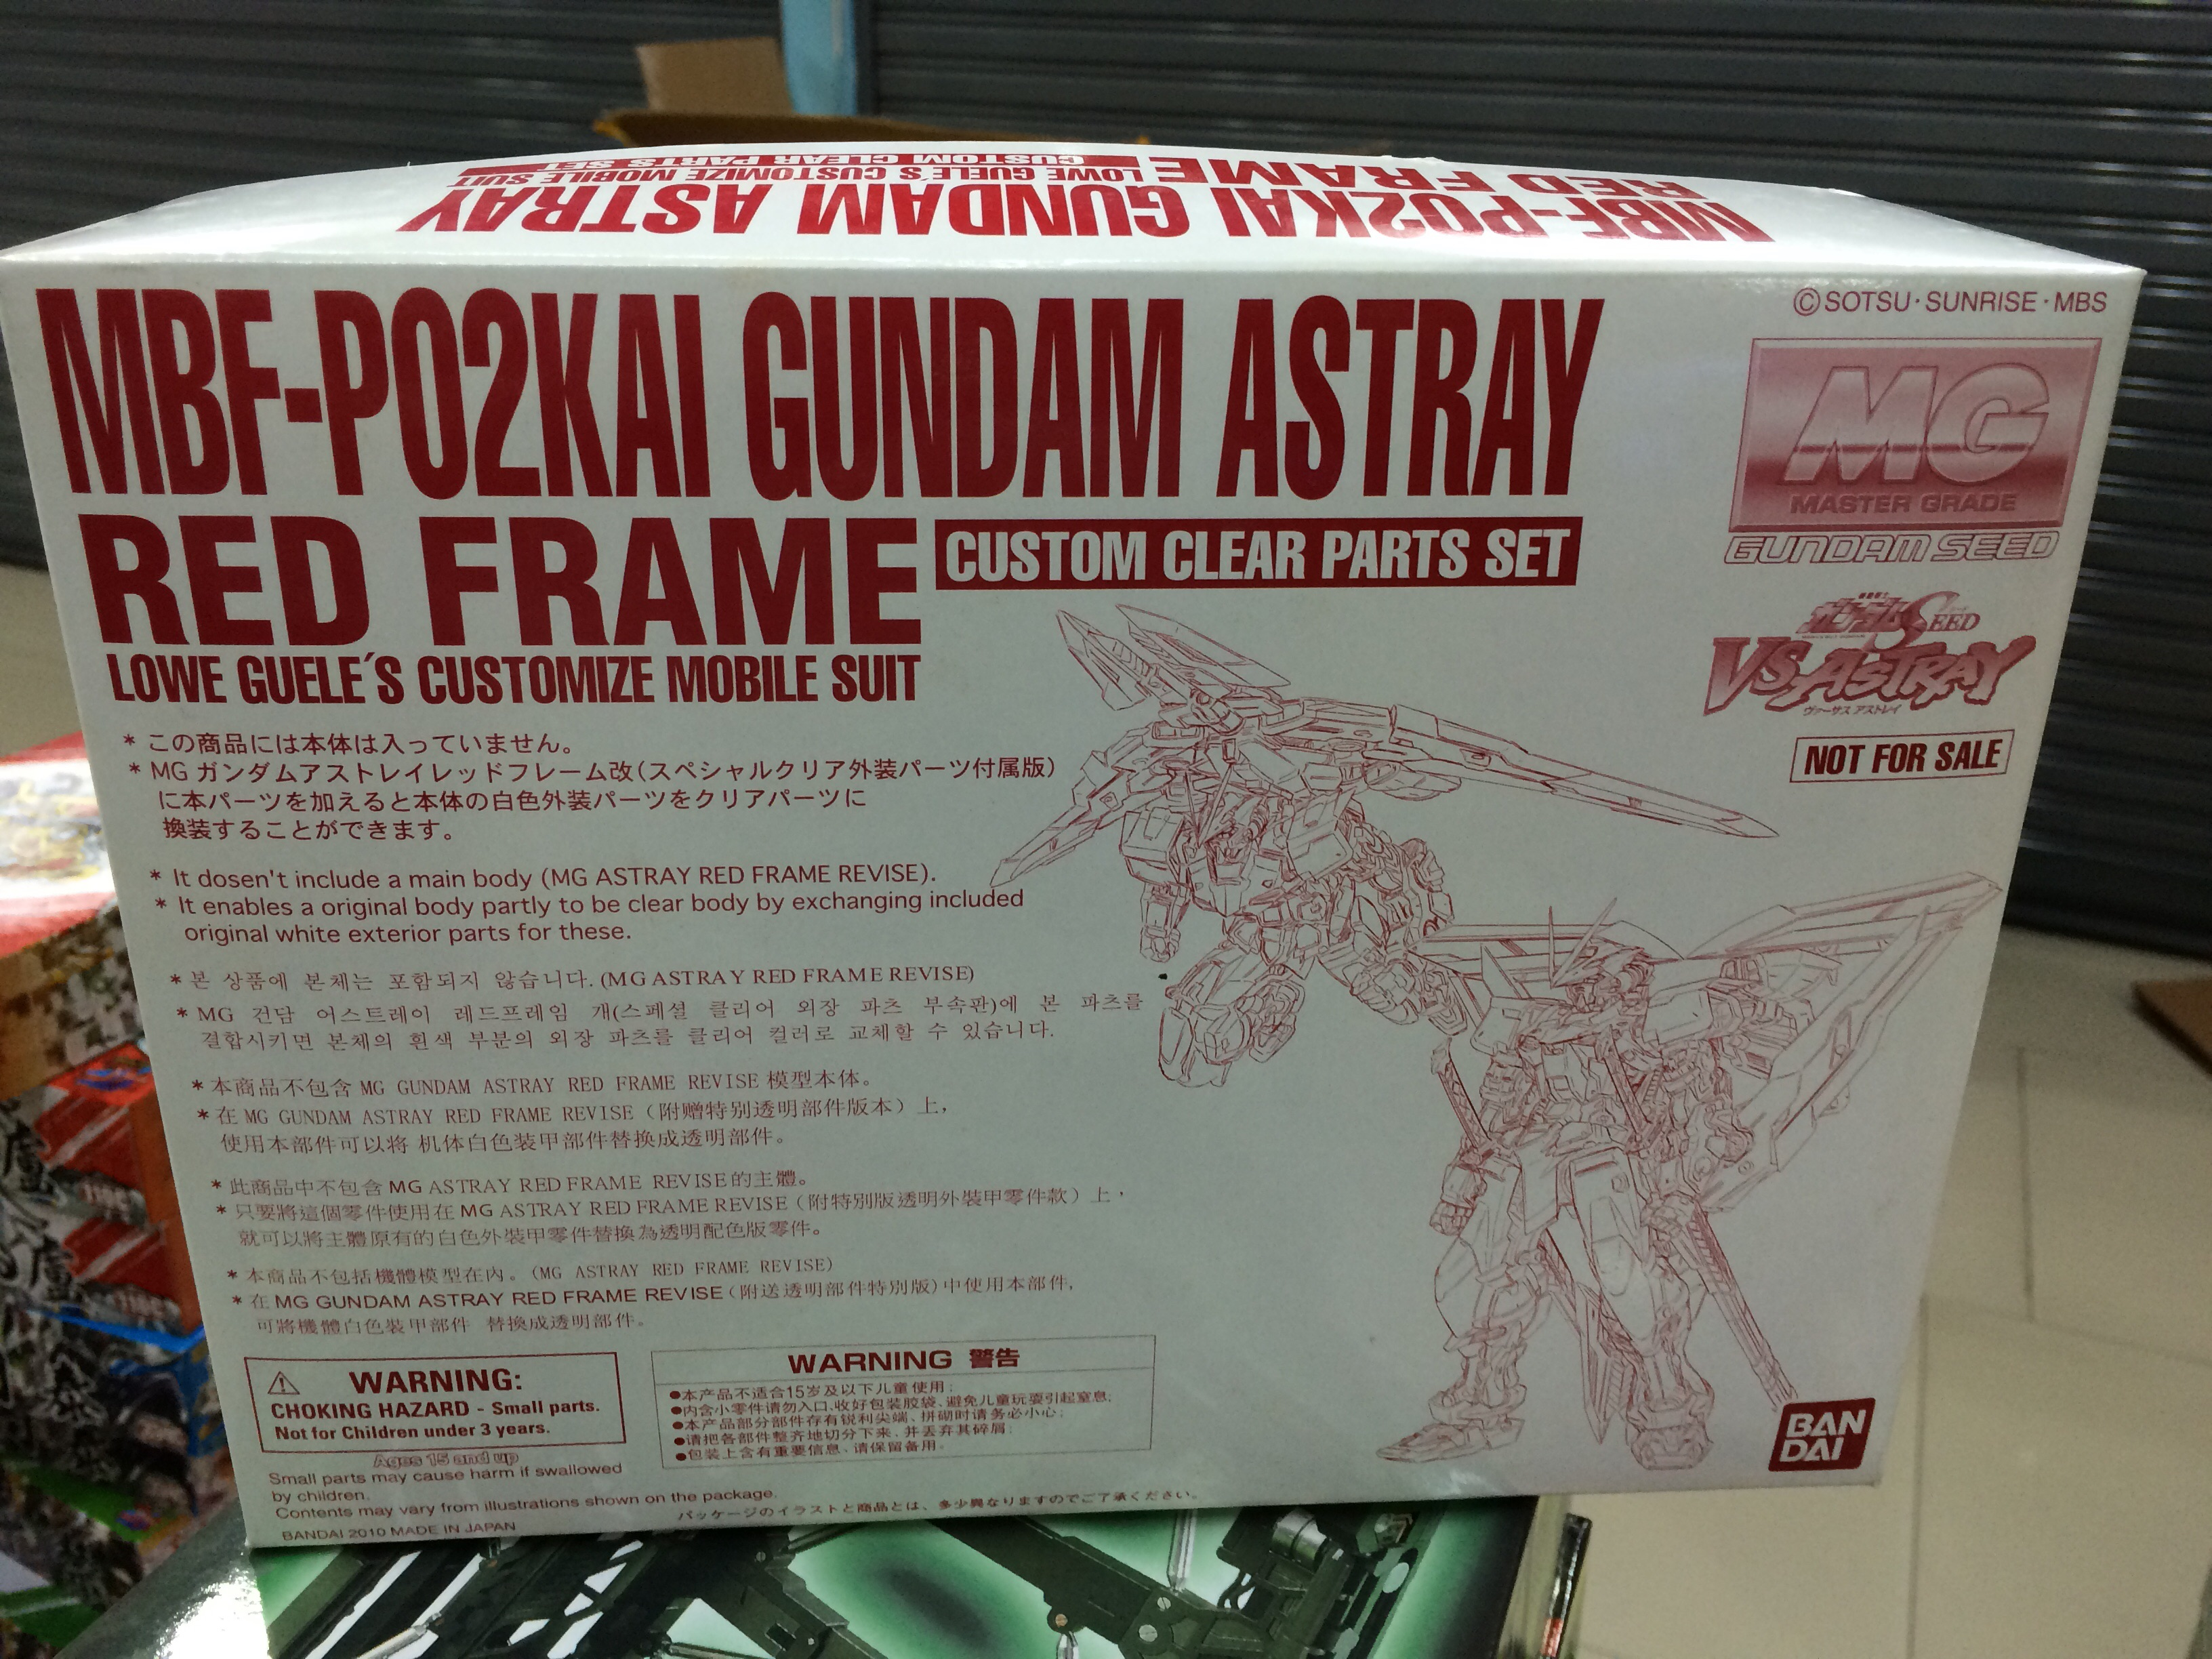 LImited Clear Part MBF-PO2 Kai Gundam Astray Red Frame Mg